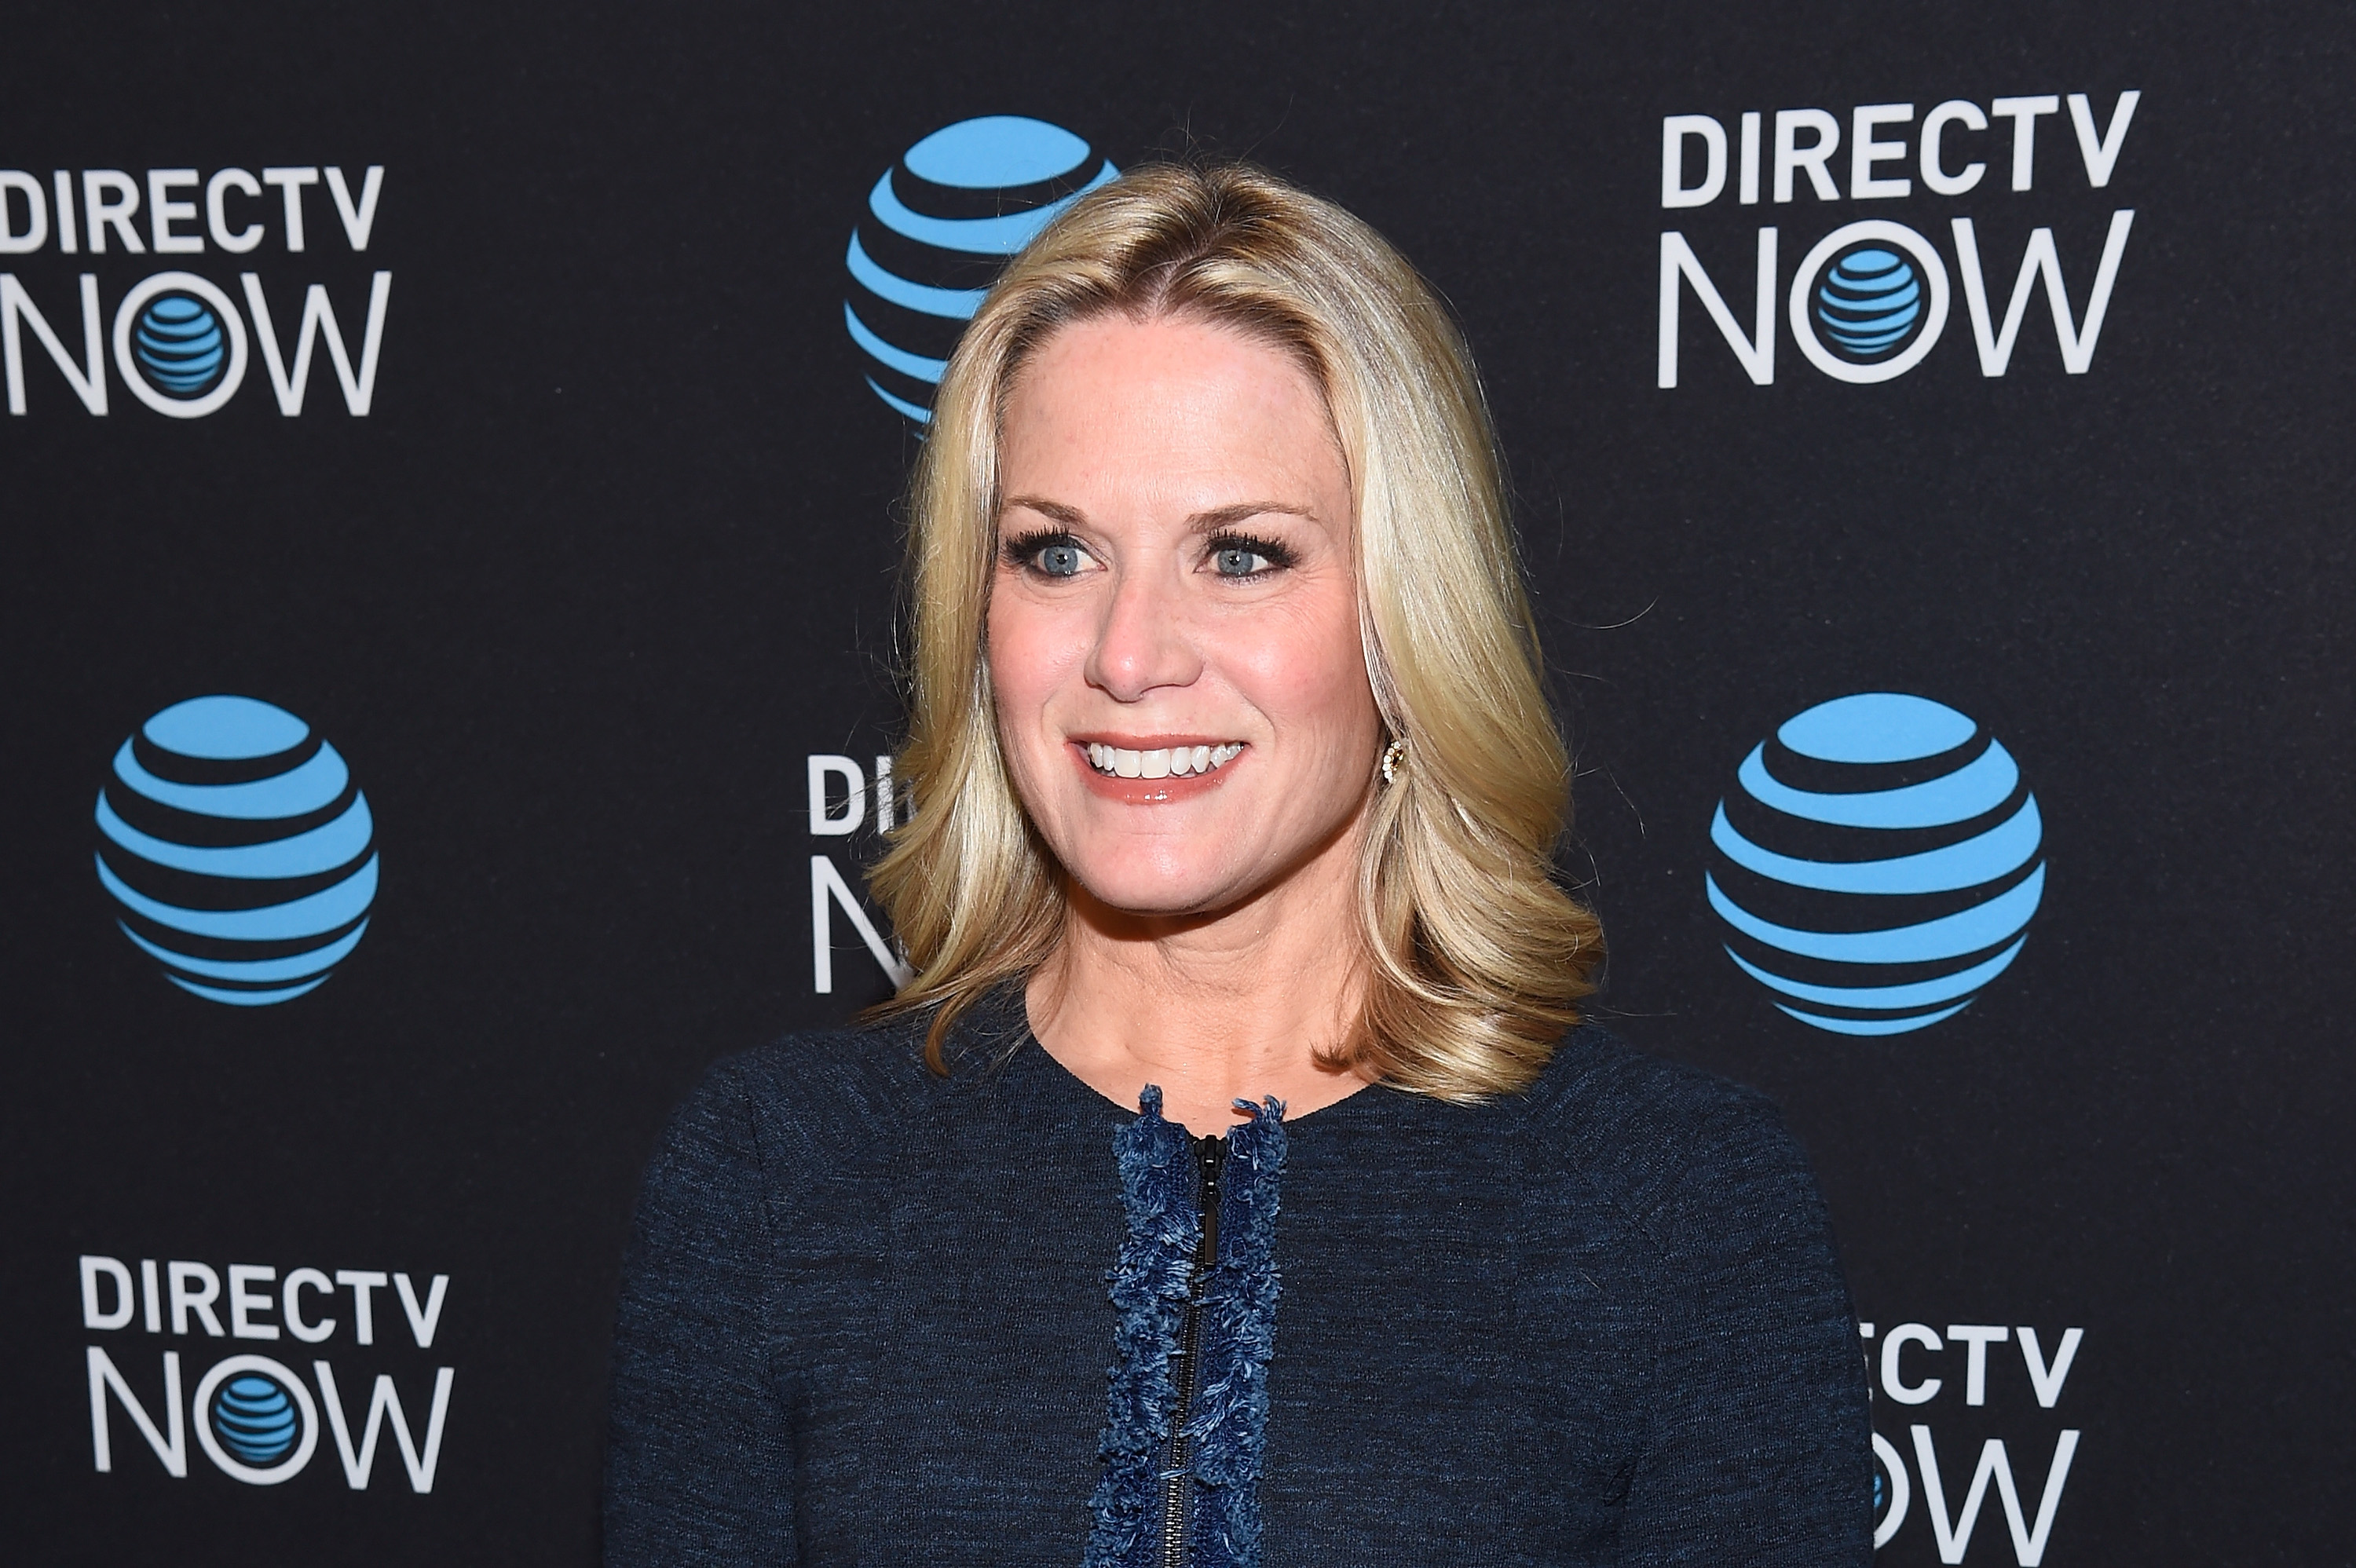 NEW YORK, NY - NOVEMBER 28: News Anchor Martha MacCallum attends AT&T's celebration of the Launch of DIRECTV NOW at Venue 57 on November 28, 2016 in New York City. (Photo by Dave Kotinsky/Getty Images for DirecTV)